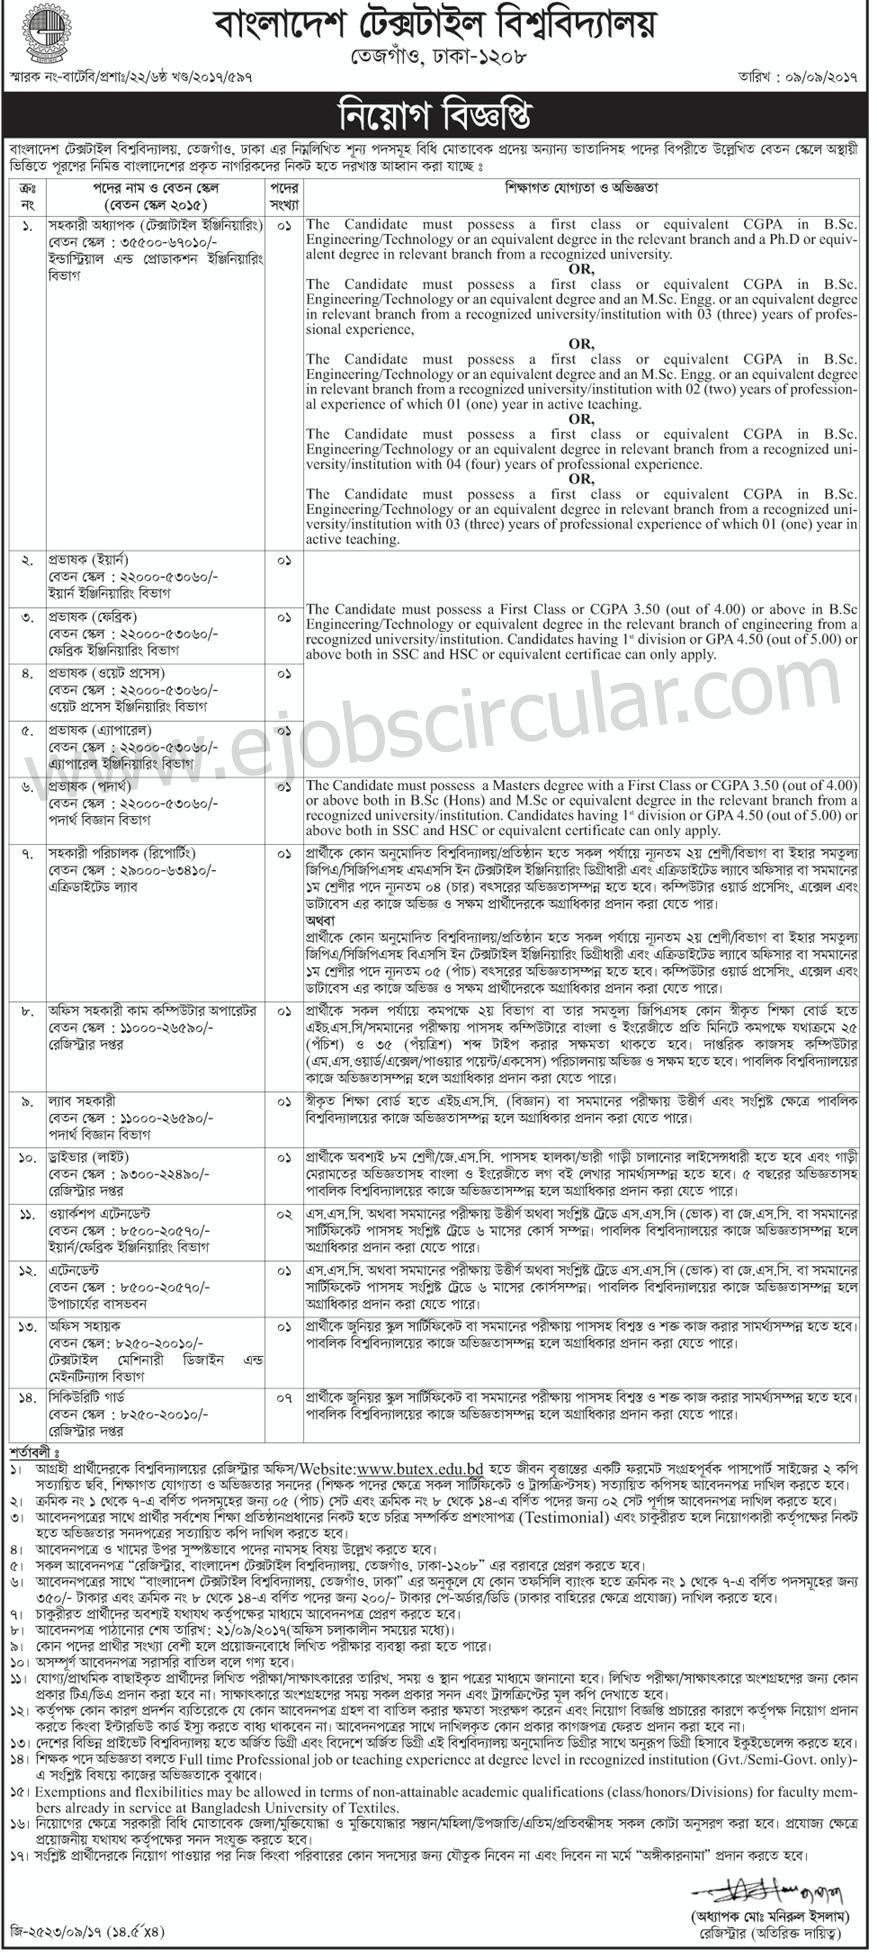 Bangladesh Taxtiles University BUTEX Job Circular 2017